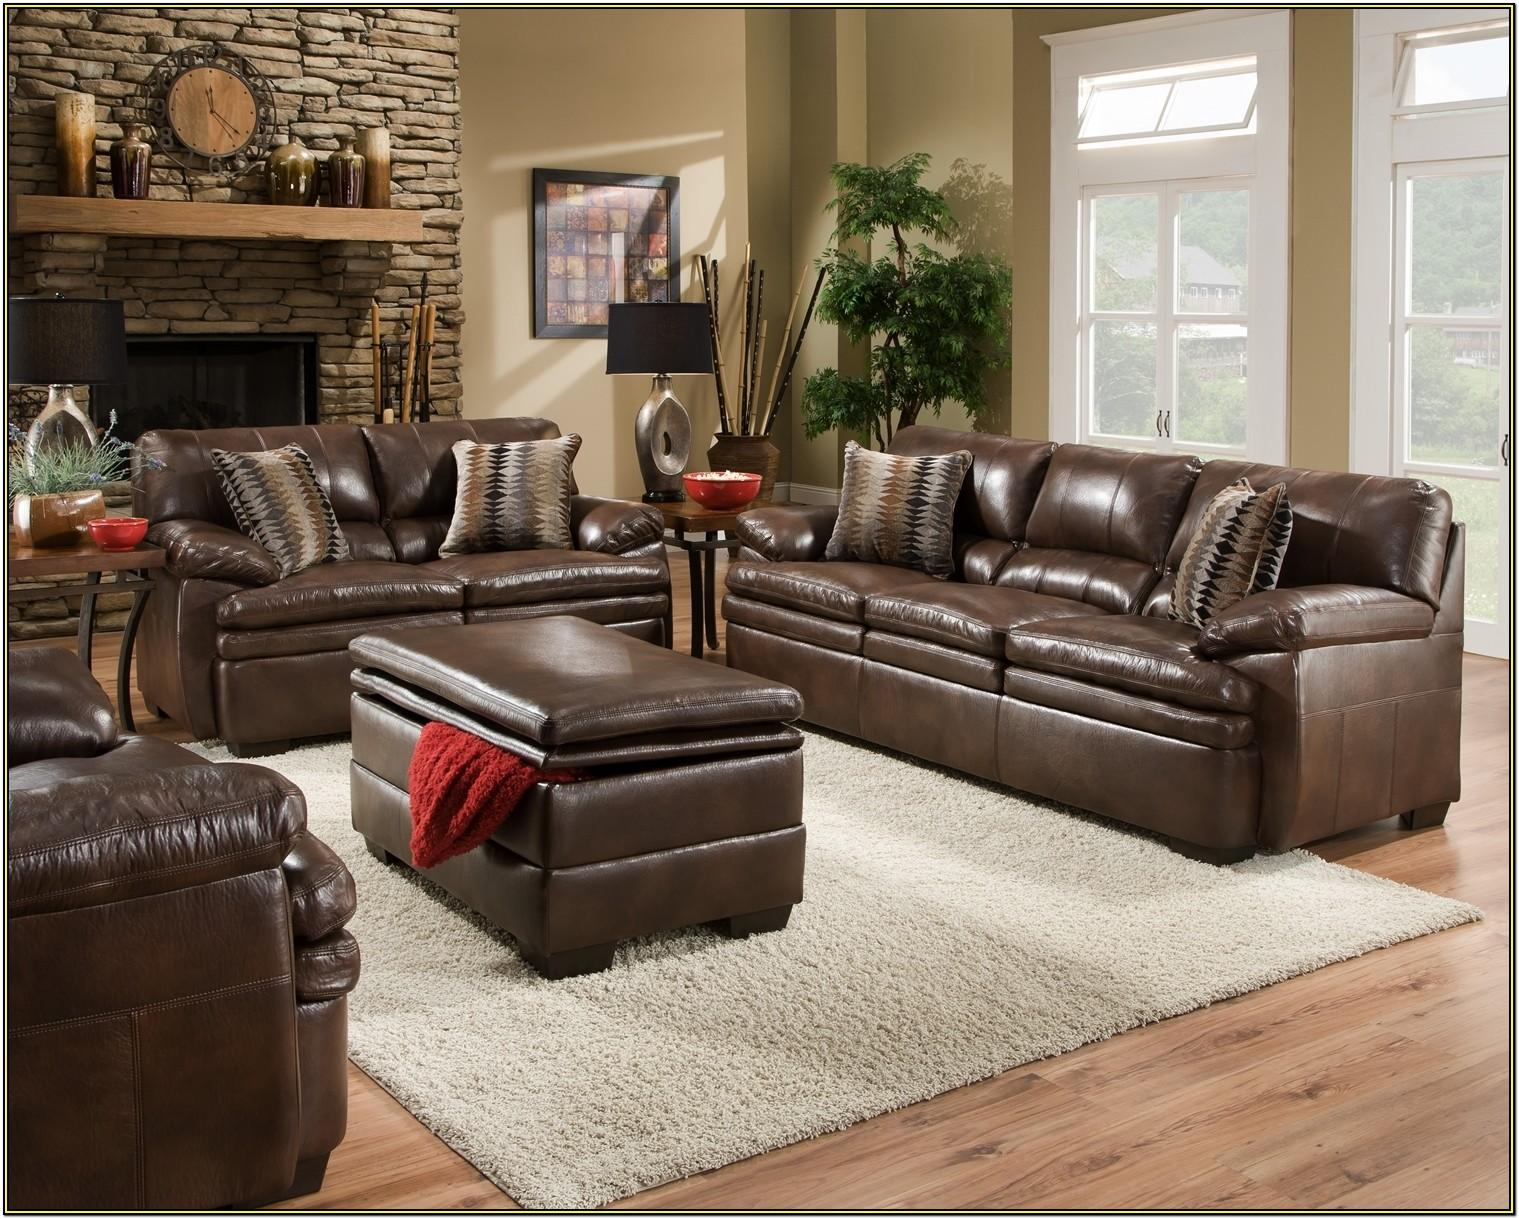 Photos Of Living Rooms With Brown Leather Furniture